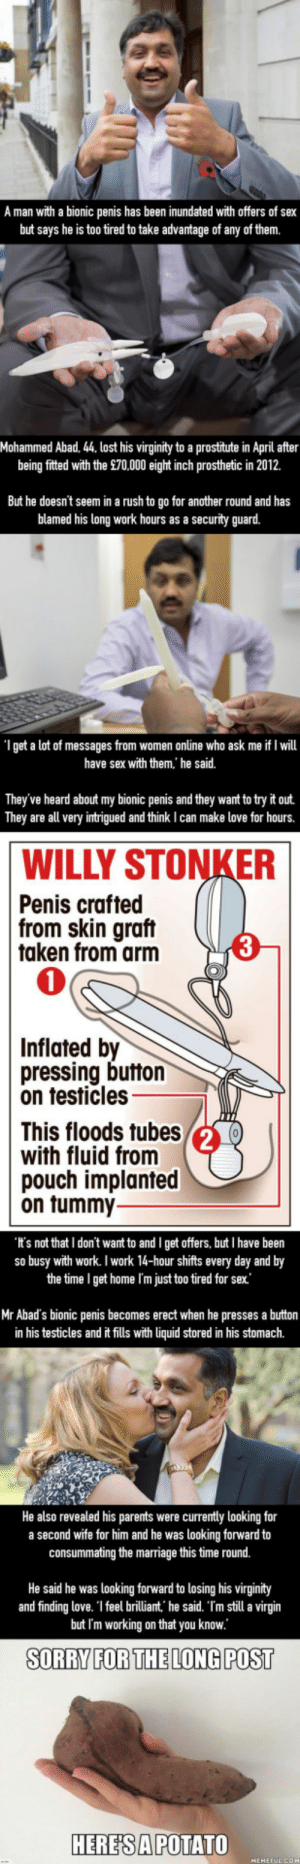 Man with bionic penis is 'too tired' to have sex with scores of female admirers: A man with a bionic penis has been inundated with offers of sex  but says he is too tired to take advantage of any of them.  Mohammed Abad, 44, lost his virginity to a prostitute in April after  being fitted with the £70,000 eight inch prosthetic in 2012.  But he doesnt seem in a rush to go for another round and has  blamed his long work hours as a security guard.  I get a lot of messages from women online who ask me if I will  have sex with them, he said.  They've heard about my bionic penis and they want to try it out.  They are all very intrigued and think I can make love for hours.  WILLY STONKER  Penis crafted  from skin graft  taken from arm  0  Inflated by  pressing button  on testicles  This floods tubes  with fluid from  pouch implanted  on tummy  Its not that I don't want to and I get offers, but I have been  so busy with work. I work 14-hour shifts every day and by  the time I get home I'm just too tired for sex  Mr Abad's bionic penis becomes erect when he presses a button  in his testicles and ft fills with liquid stored in his stomach.  He also revealed his parents were currentty looking for  a second wife for him and he was looking forward to  consummating the marriage this time round.  He said he was looking forward to losing his virginithy  and finding love. 1 feel brilliant. he said. Tm still a virgin  but Im working on that you know  SORRY FORTHELONG POST  HERESAPOTATO Man with bionic penis is 'too tired' to have sex with scores of female admirers